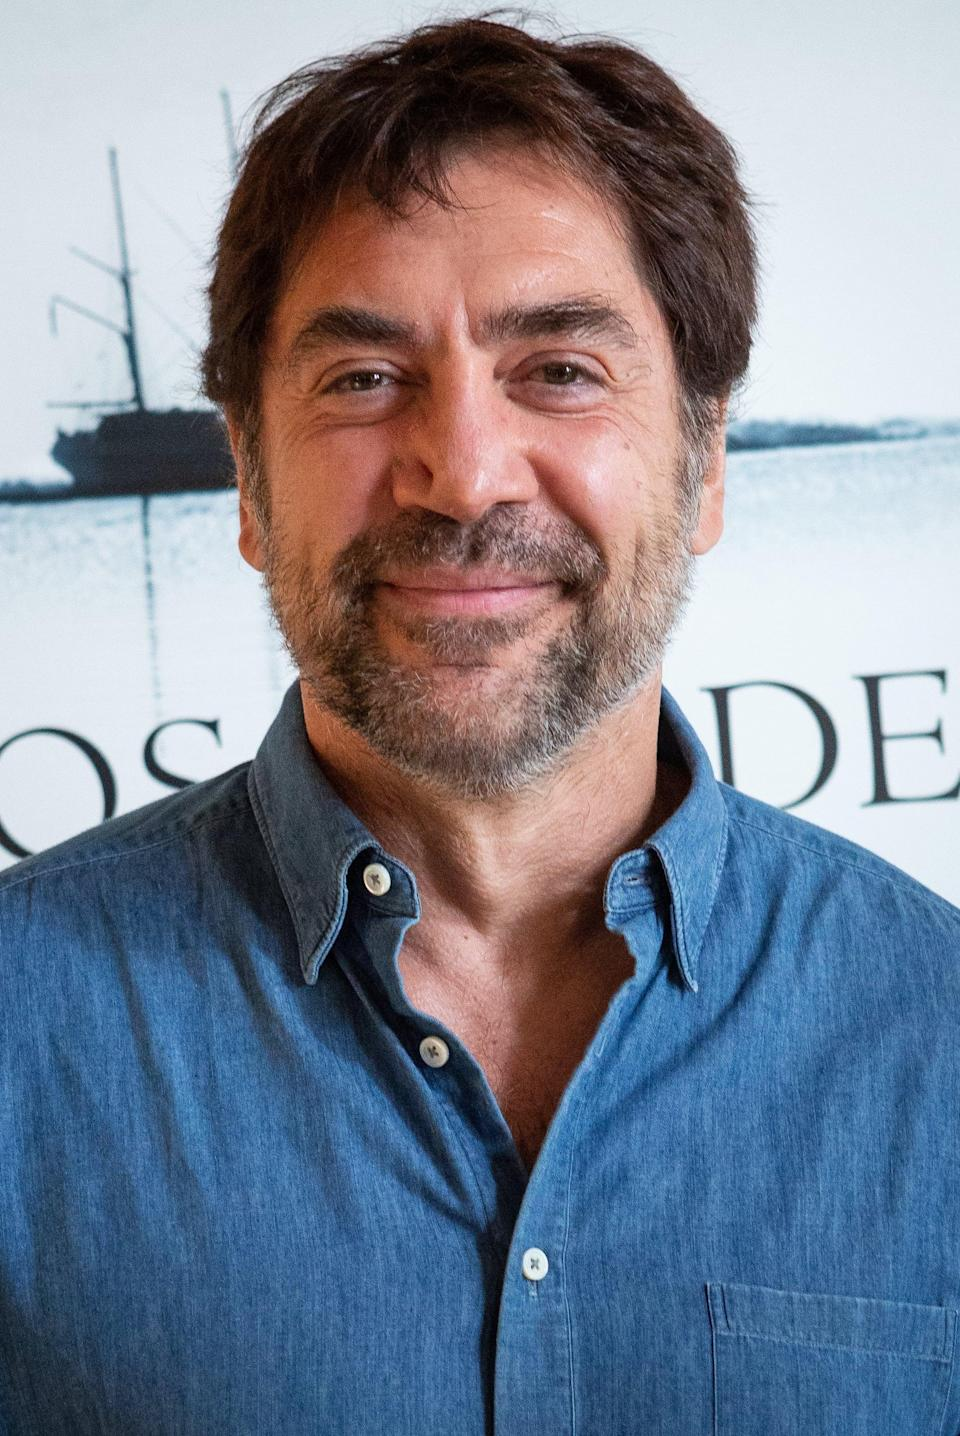 "<p>The <b>No Country For Old Men</b> actor is <a href=""https://www.hollywoodreporter.com/heat-vision/javier-bardem-talks-star-disneys-live-action-little-mermaid-1225058"" class=""link rapid-noclick-resp"" rel=""nofollow noopener"" target=""_blank"" data-ylk=""slk:reportedly in talks"">reportedly in talks</a> to play the ruler of Atlantica. </p>"